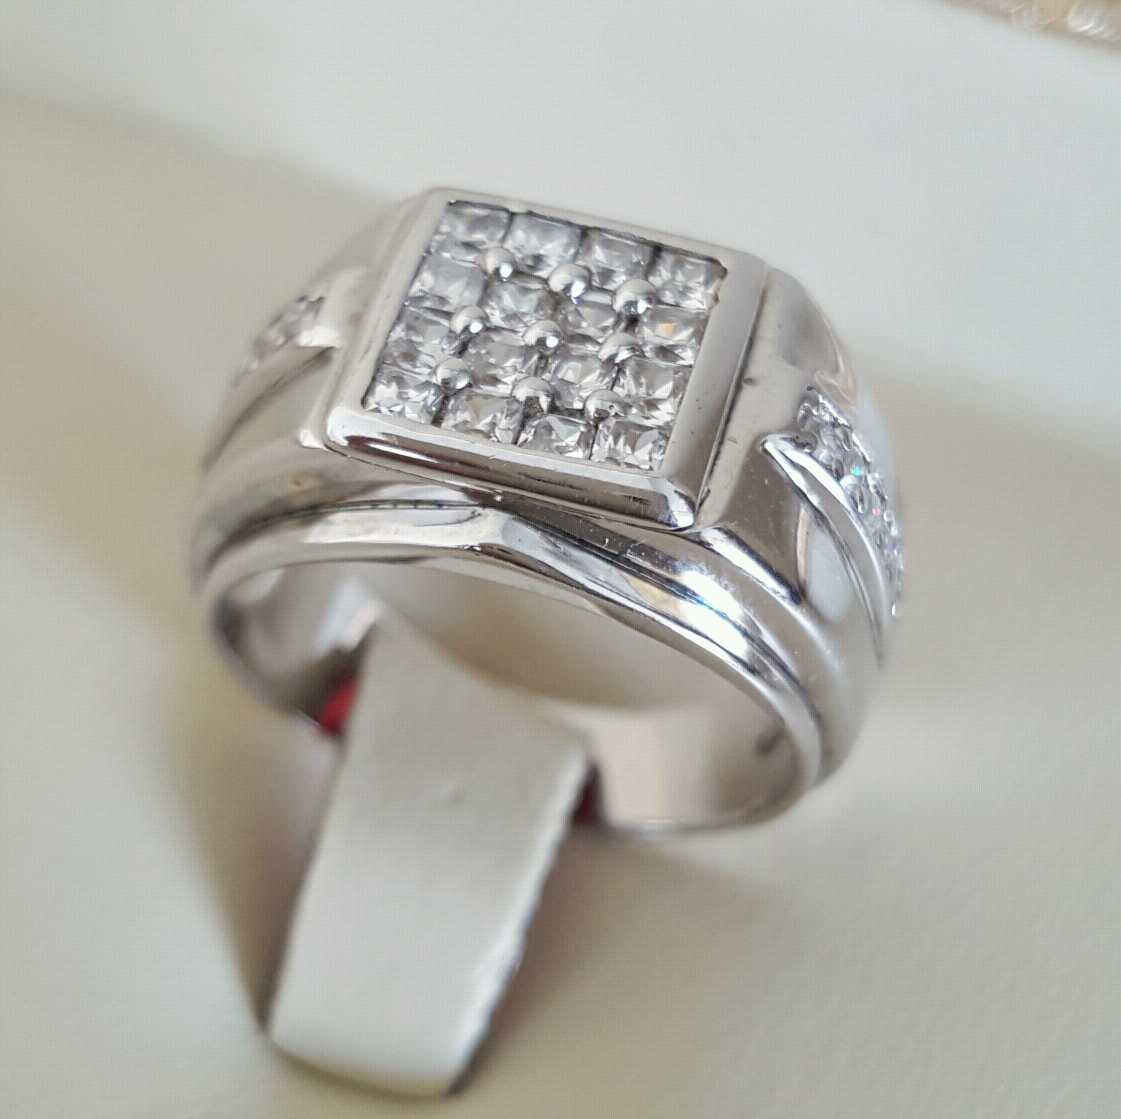 Pure Silver 925 Men Rings Italian Rings Imported From Dubai 7 natural gemstones pakistan + 925 silver jewelry online